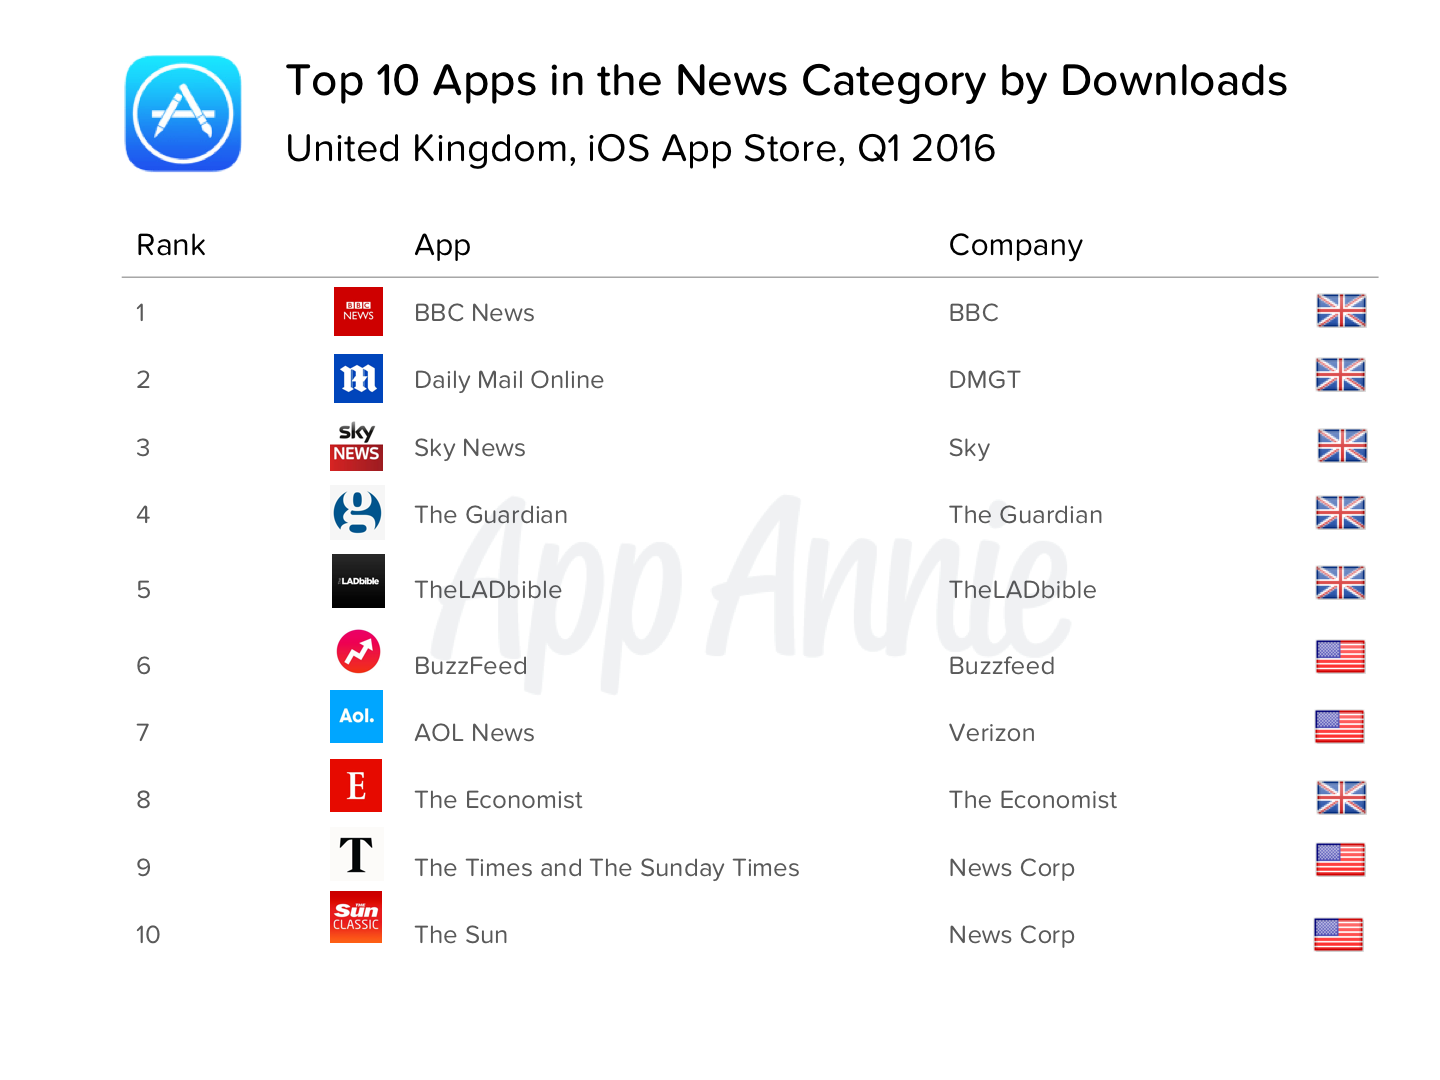 Top 10 Apps in the News Category by Downloads United Kingdom iOS App Store Q1 2016